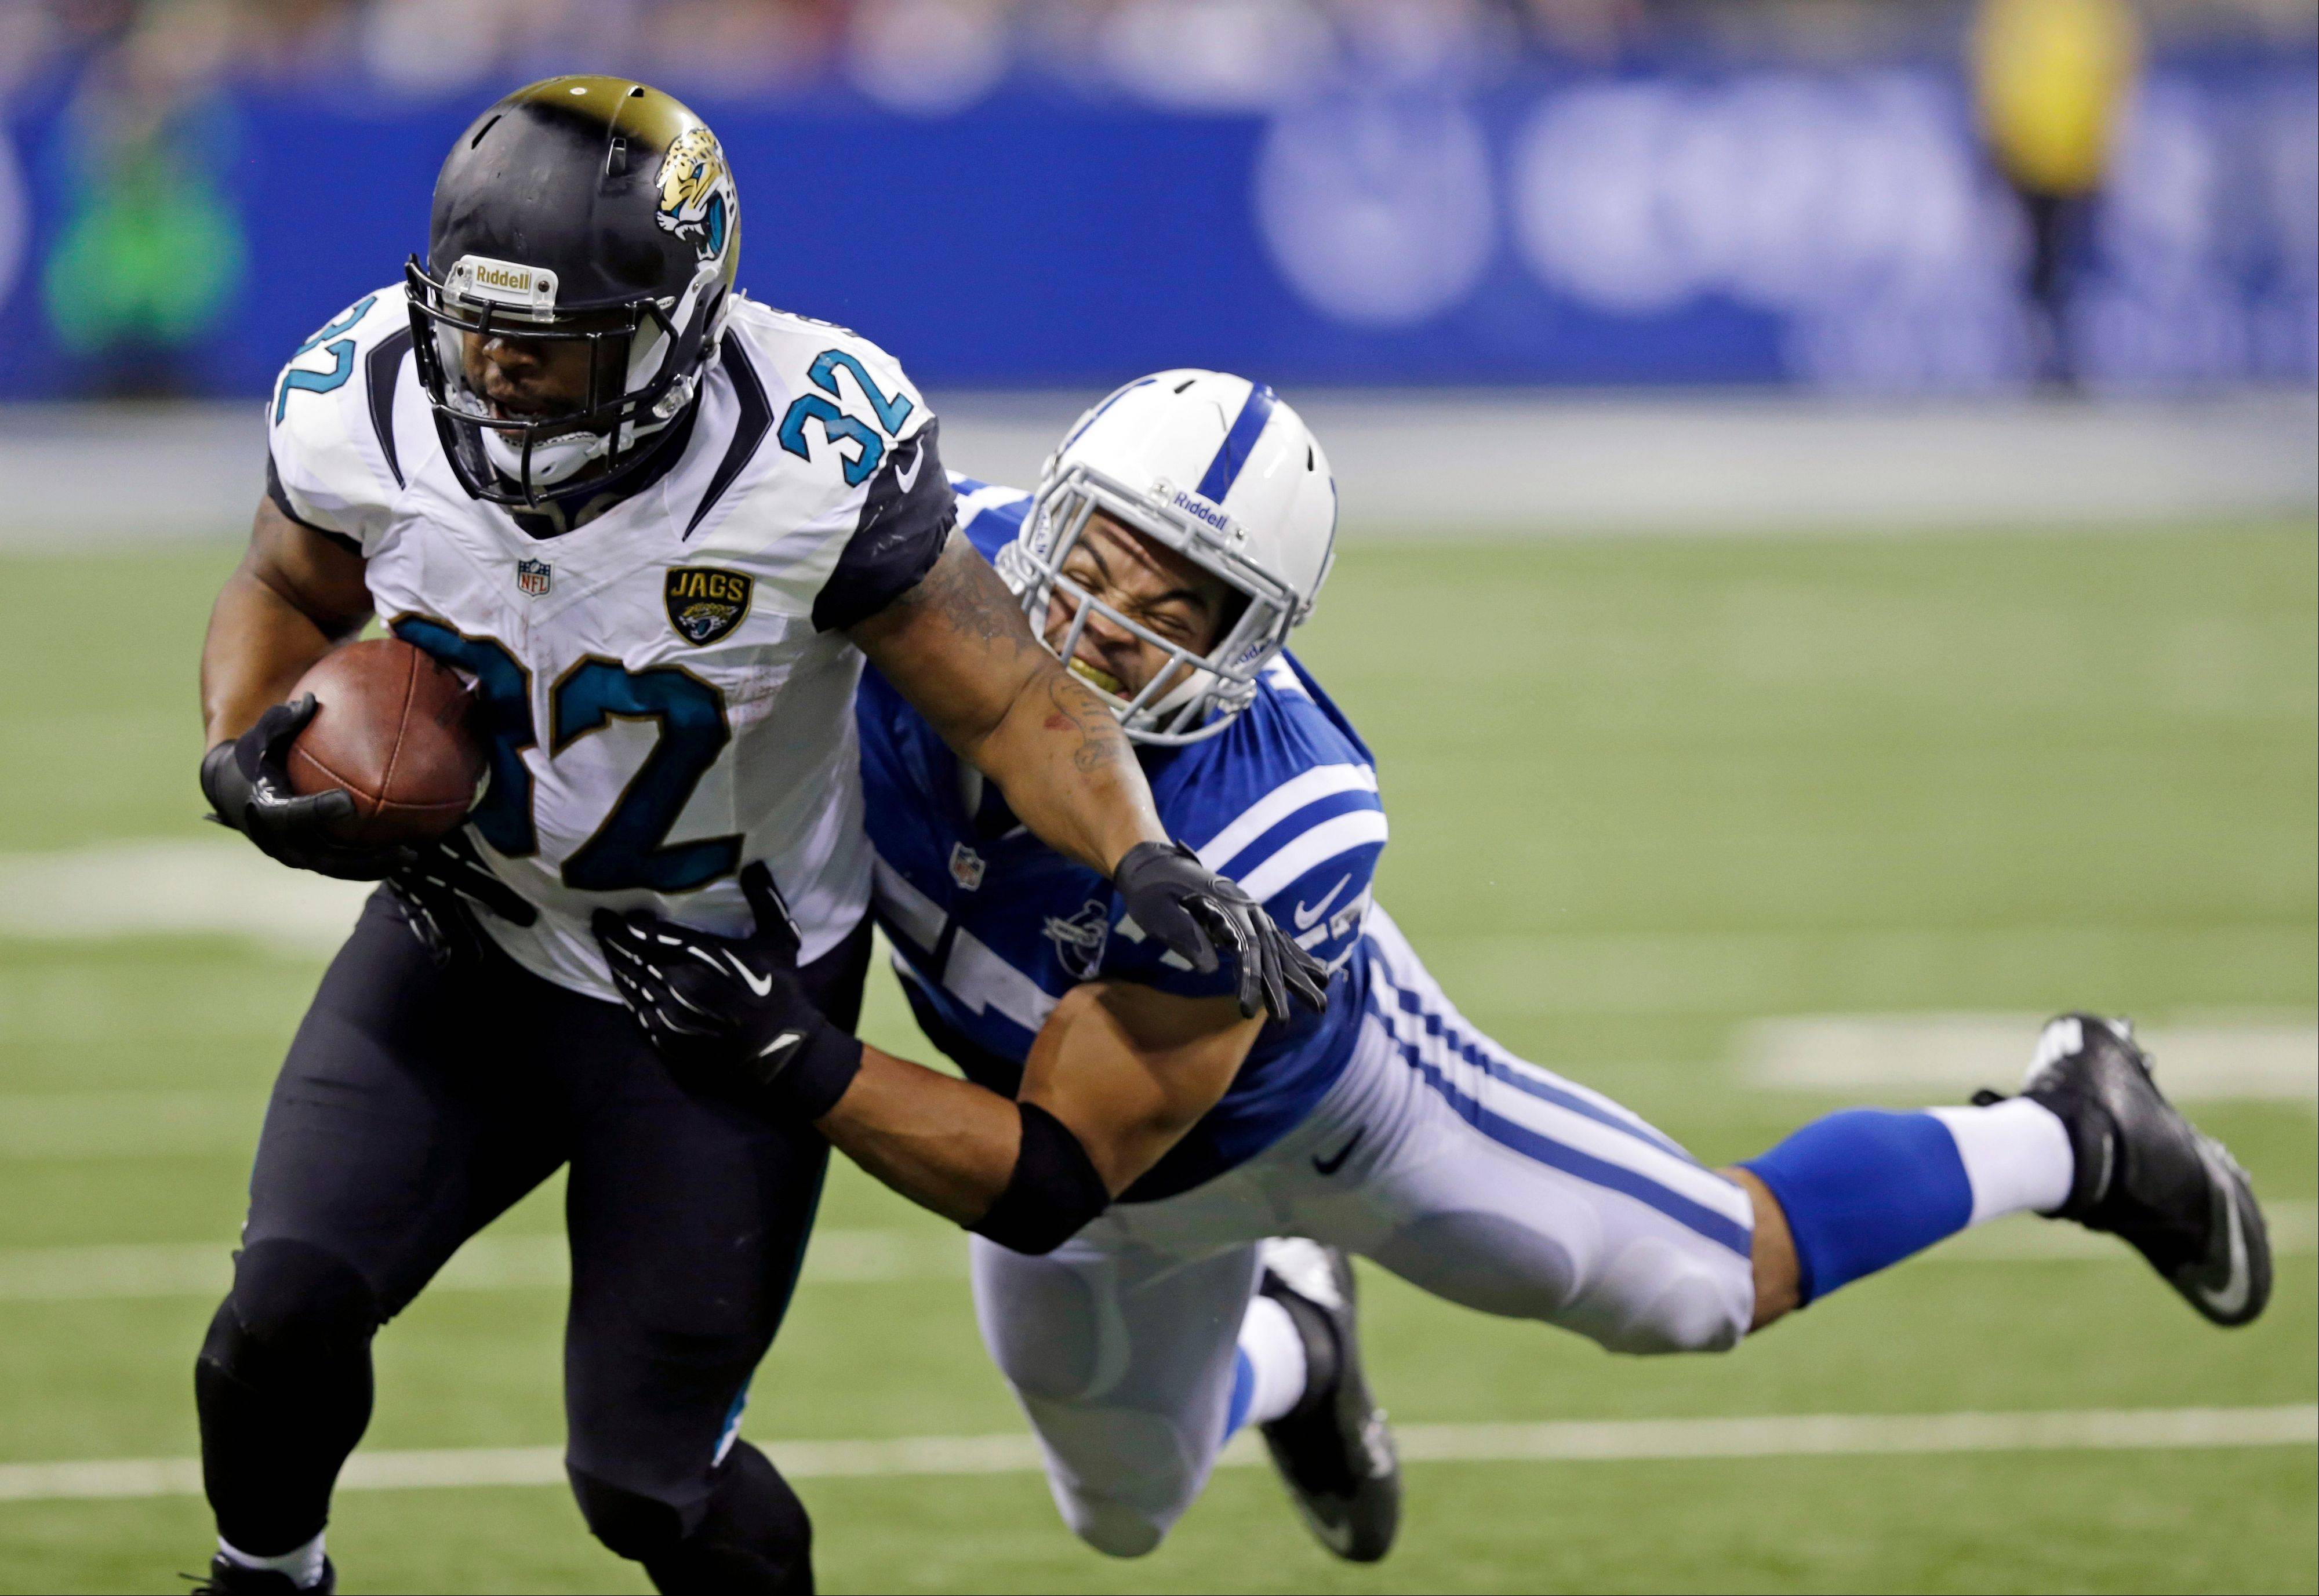 Jacksonville�s Maurice Jones-Drew is tackled by the Colts� Josh McNary during the second half of Sunday�s game in Indianapolis. His eighth season with the Jaguars might have been his last.